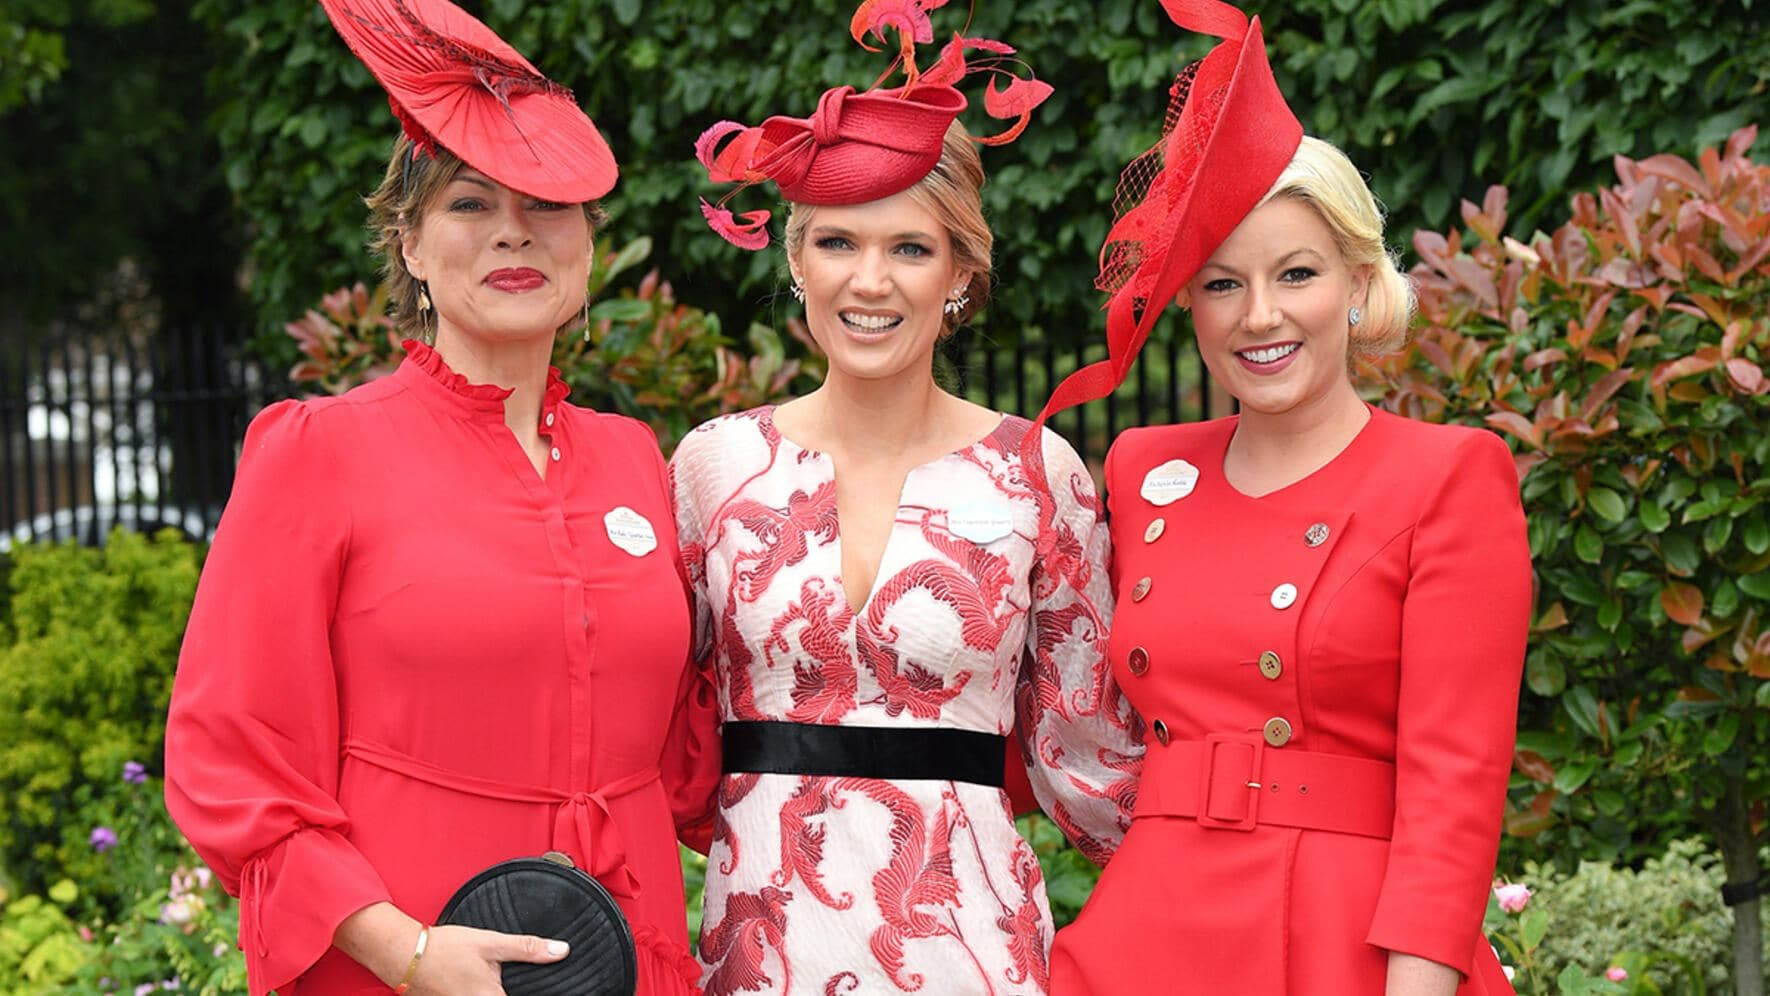 ASCOT, ENGLAND - JUNE 18: Kate Silverton, Charlotte Hawkins and Natalie Rushdie attend day one of Royal Ascot at Ascot Racecourse on June 18, 2019 in Ascot, England. (Photo by Karwai Tang/WireImage)